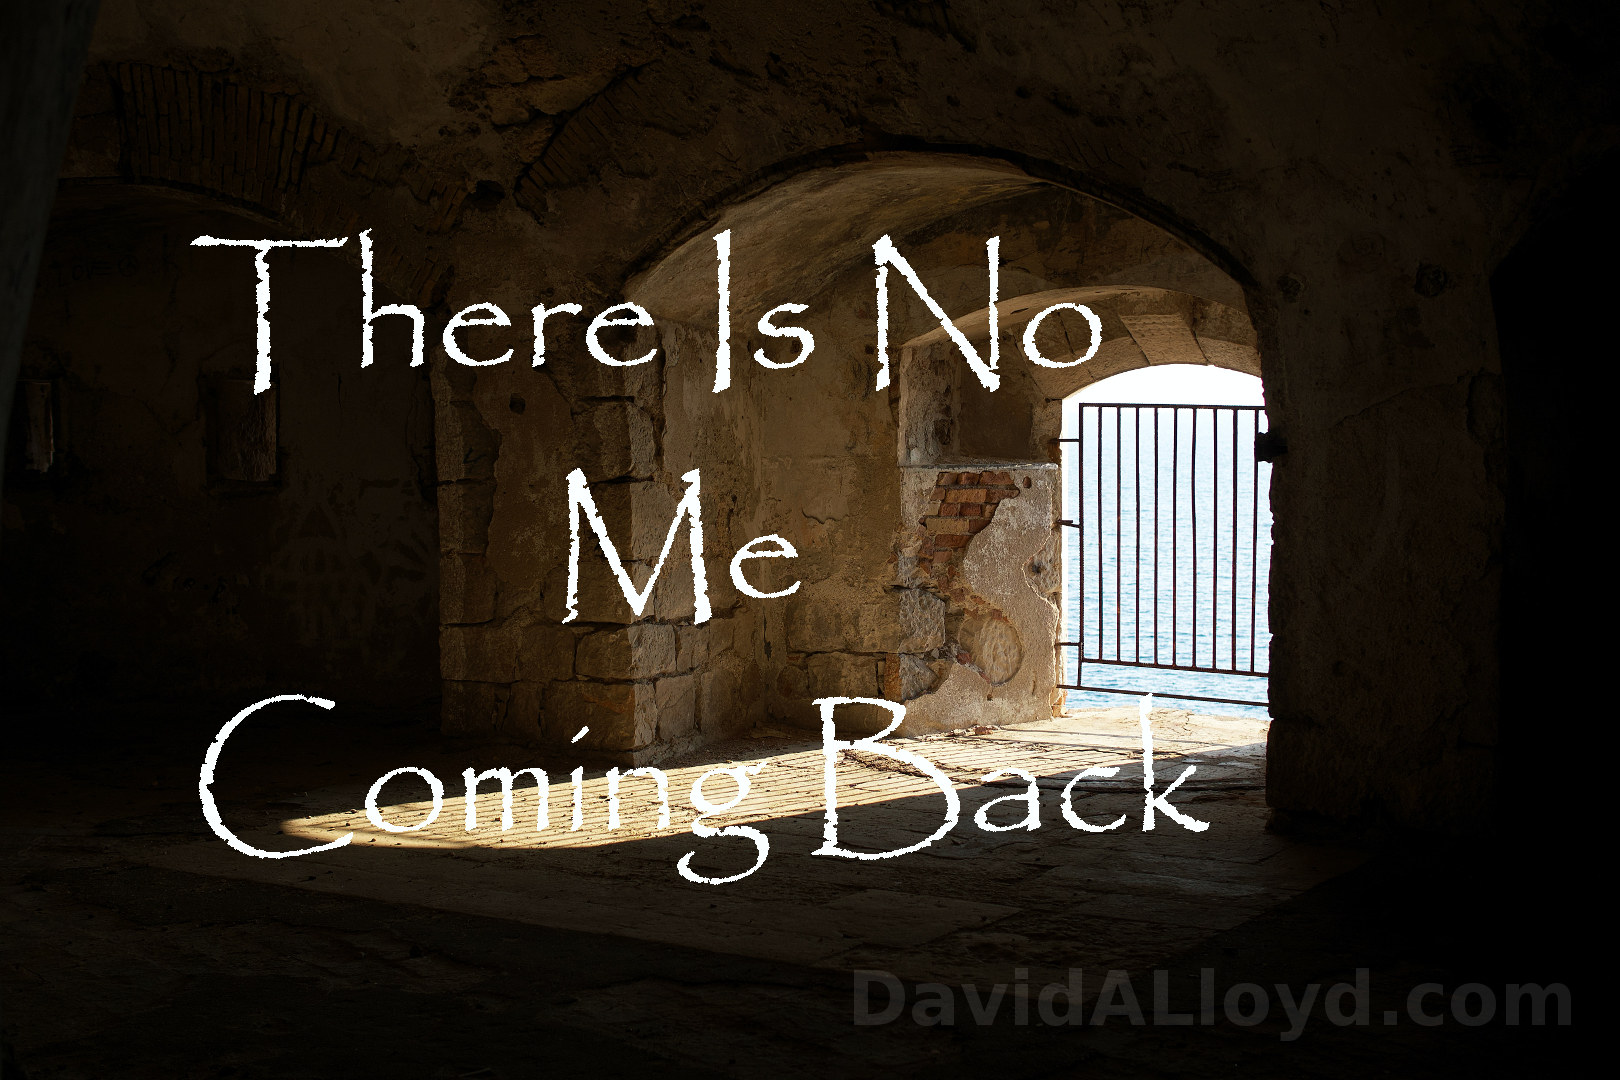 There is no me coming back